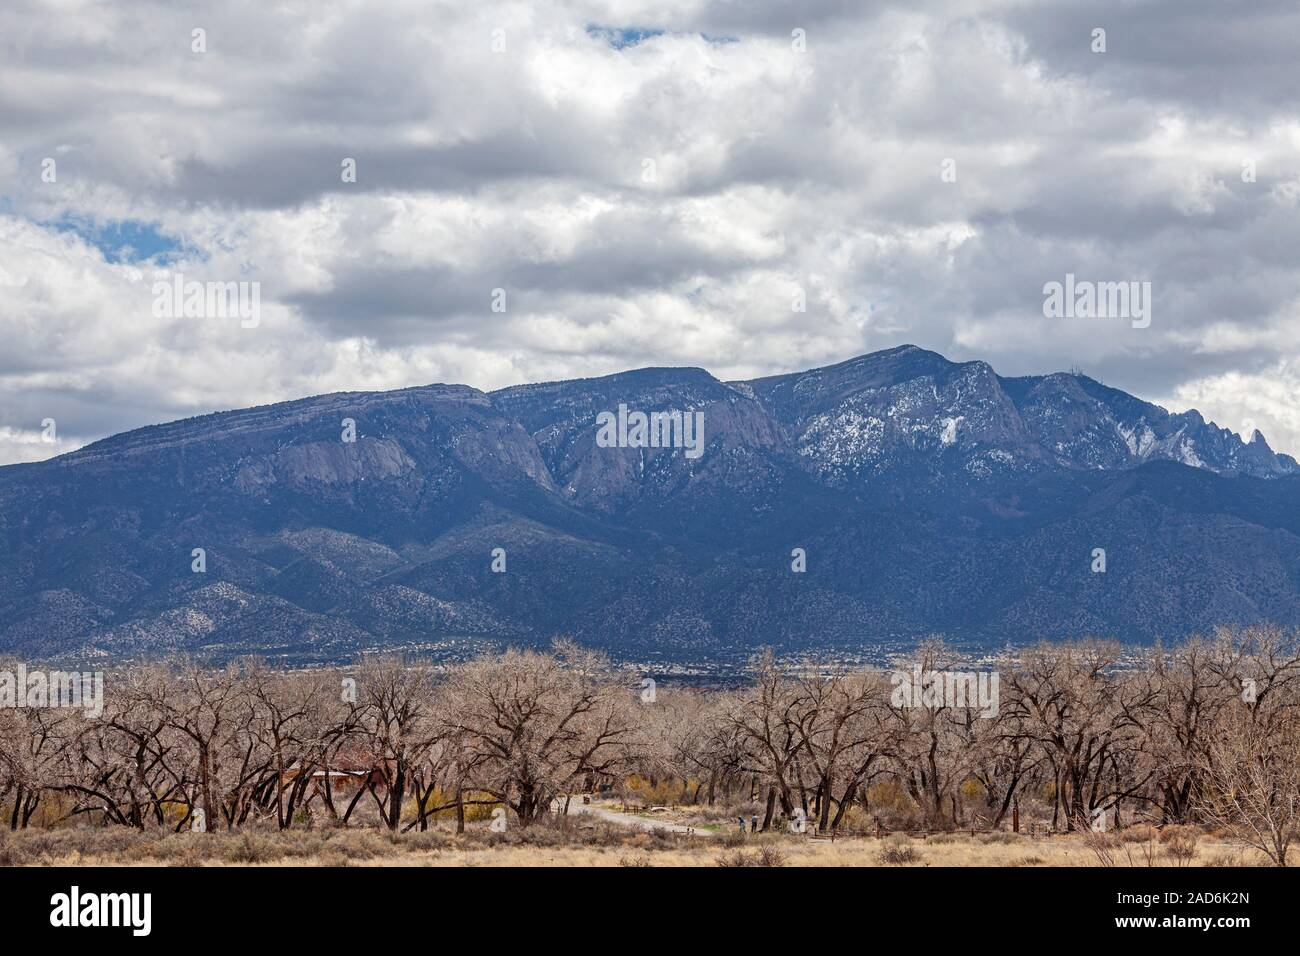 Cottonwood trees that line the Rio Grande with the Sandia Mountains in the backgound, Albuquerque, New Mexico, USA Stock Photo